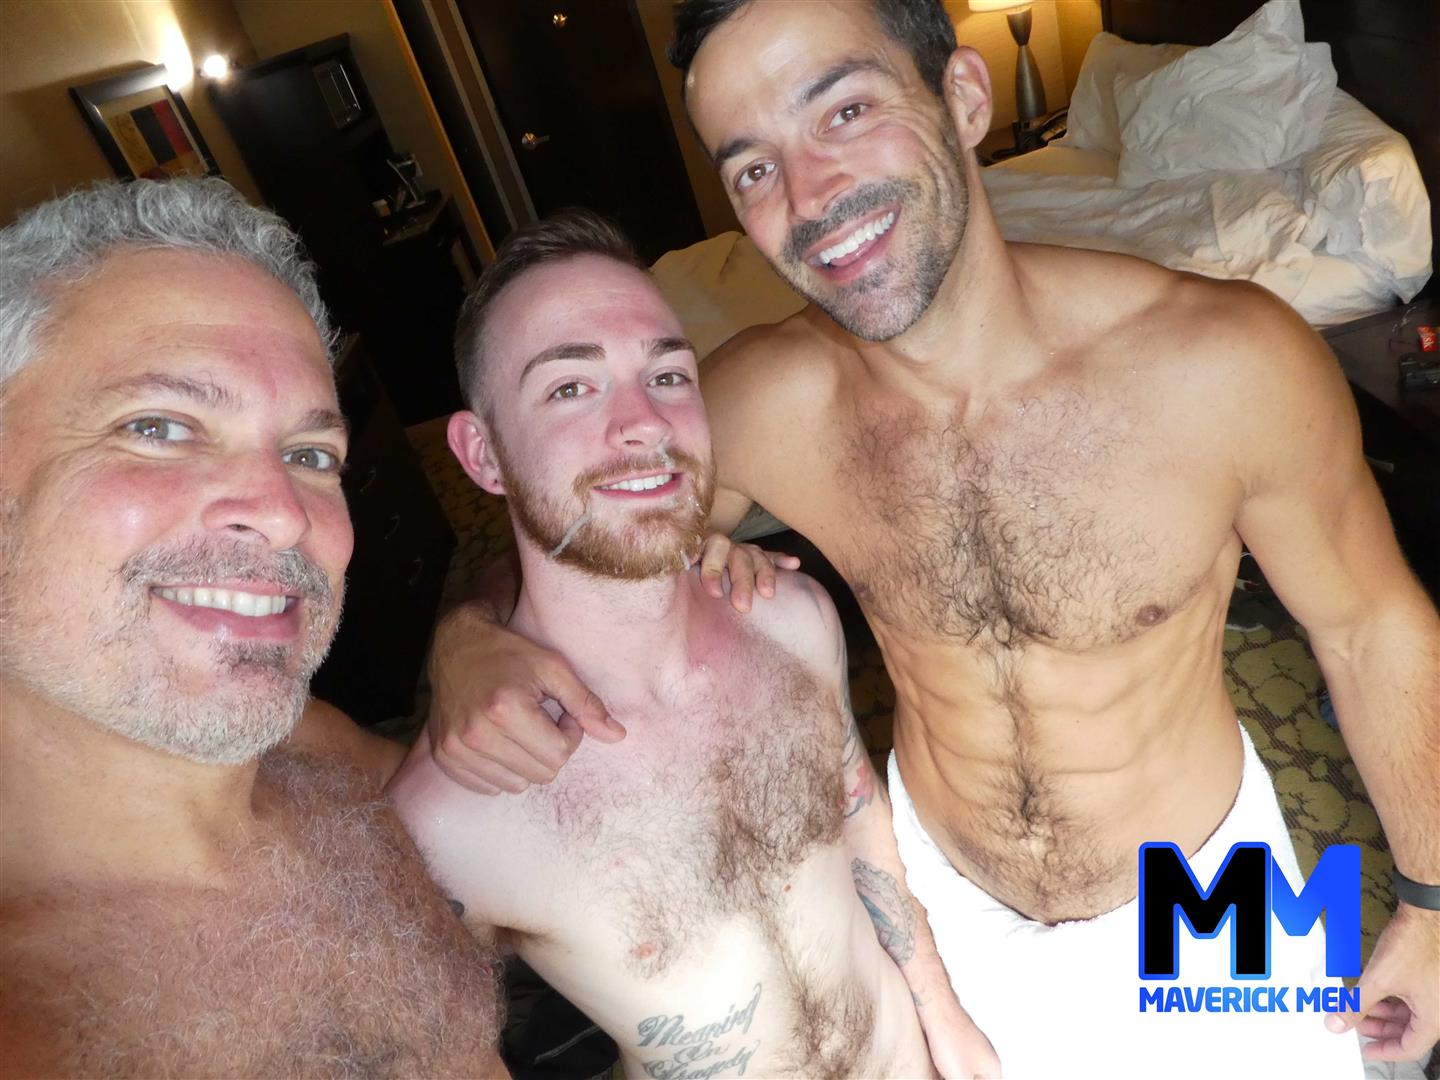 Maverick-Men-Chase-Thick-Dick-Daddies-Bareback-Fucking-Young-Hairy-Guy-7 The Maverick Men Daddies Fill A Hot Young Hairy Ass Full Of Cum